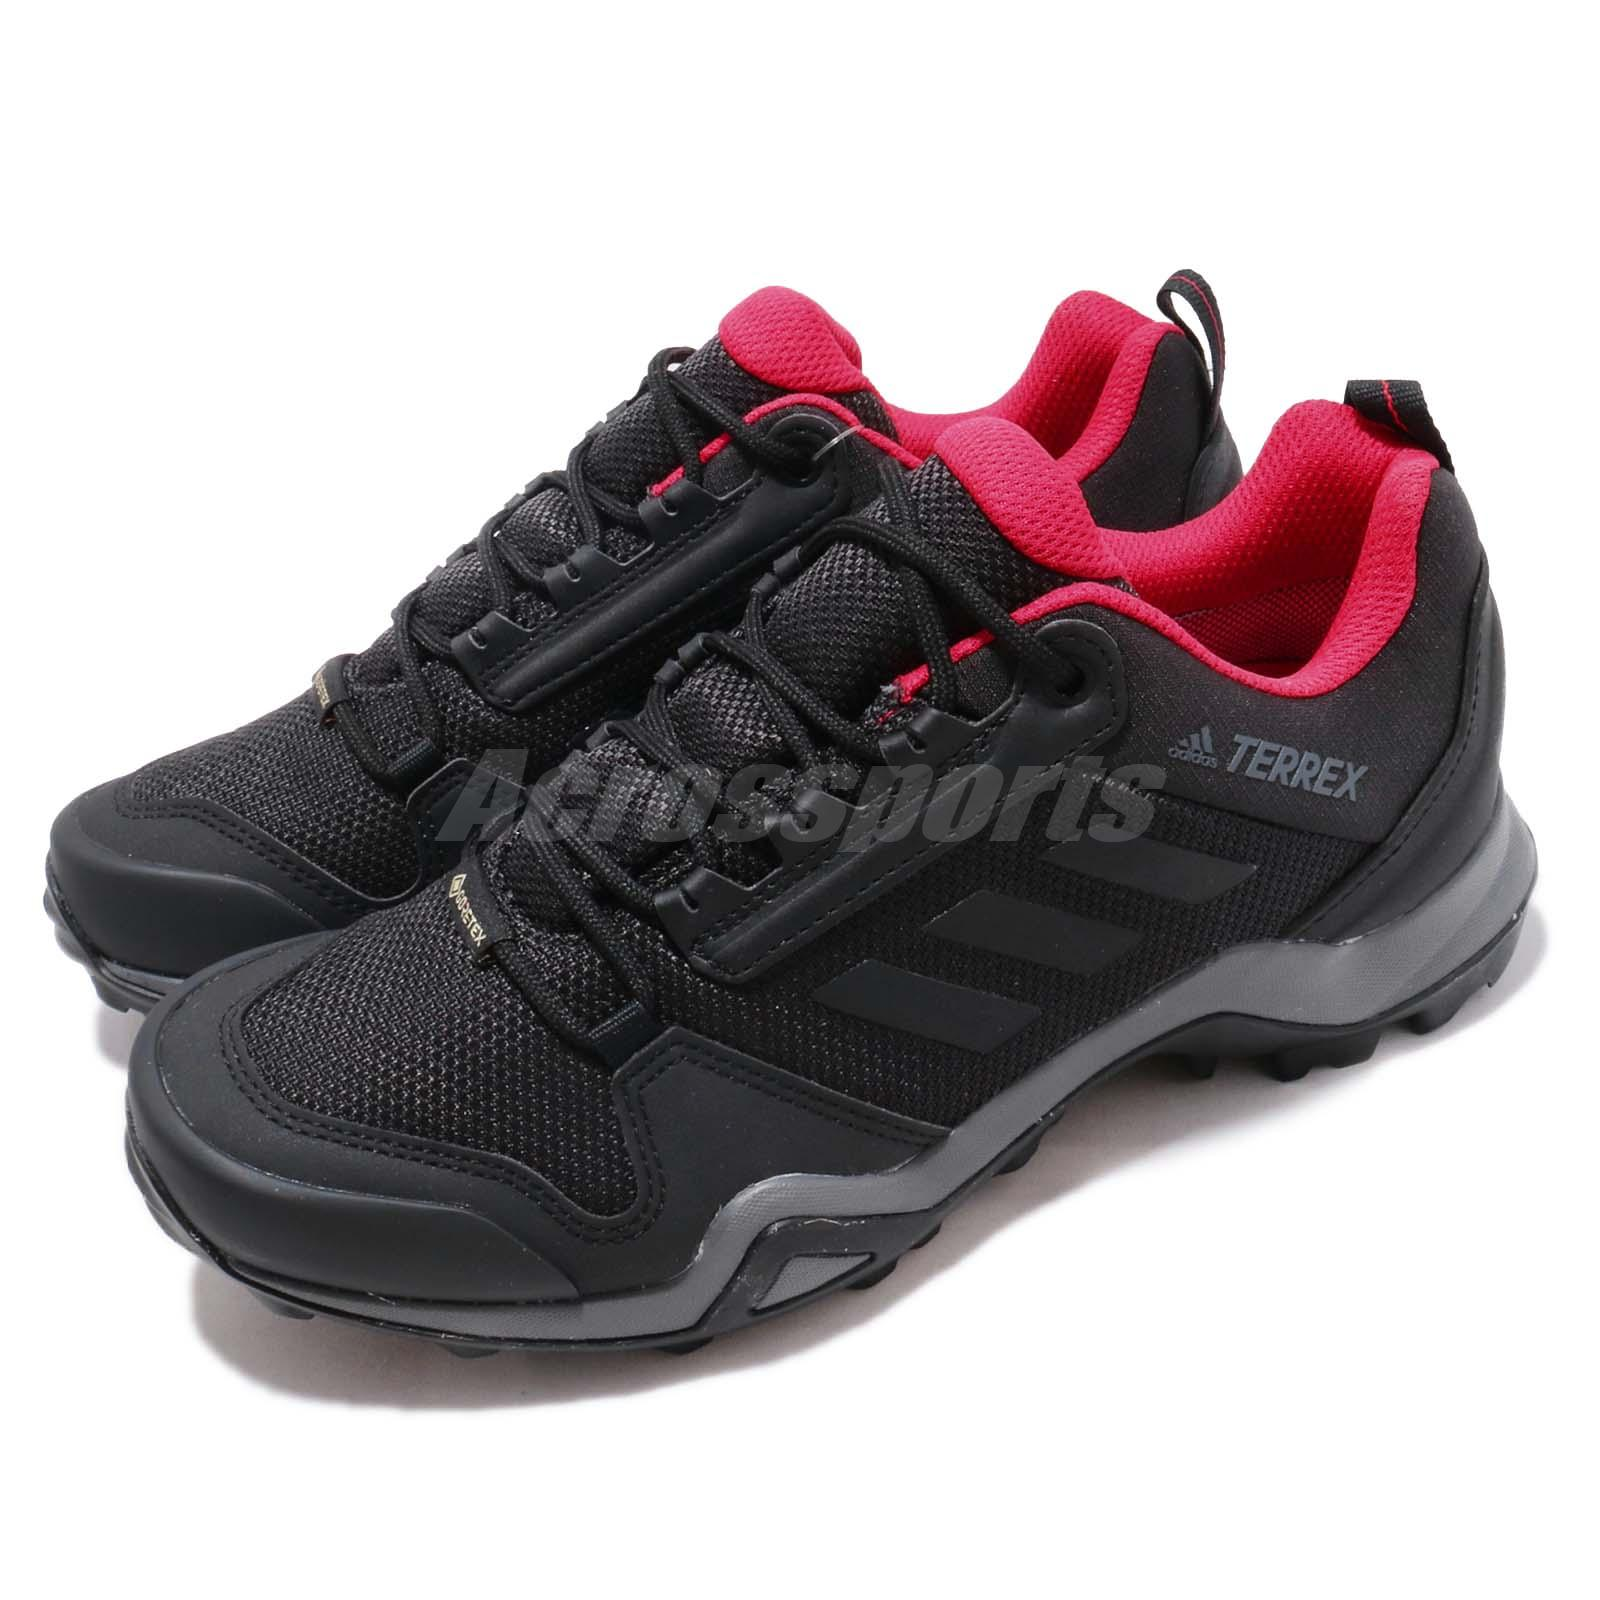 Details about adidas Terrex AX3 GTX W Gore-Tex Black Red Women Outdoors  Shoes Sneakers BC0572